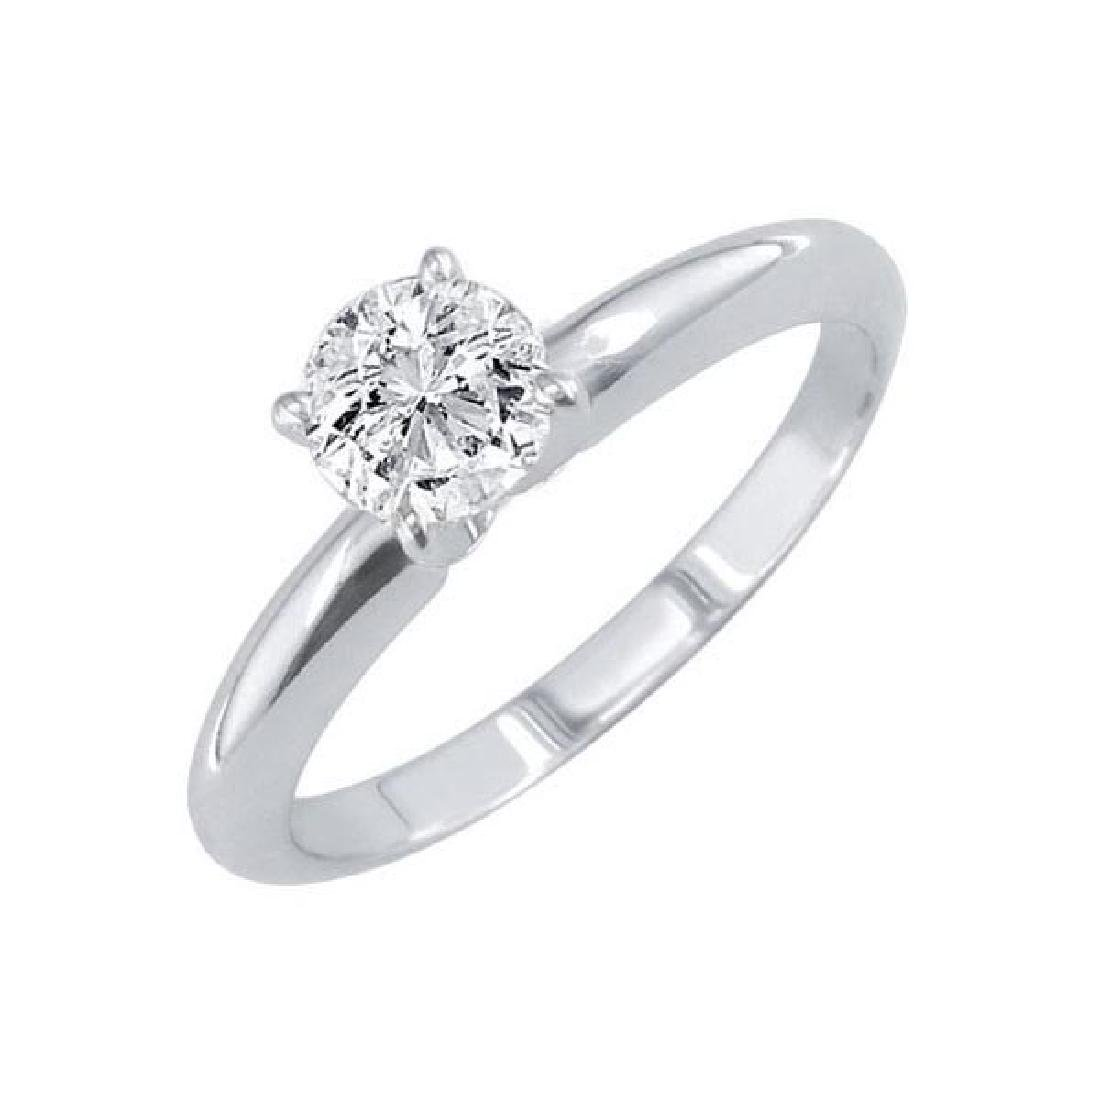 Certified 0.72 CTW Round Diamond Solitaire 14k Ring E/I